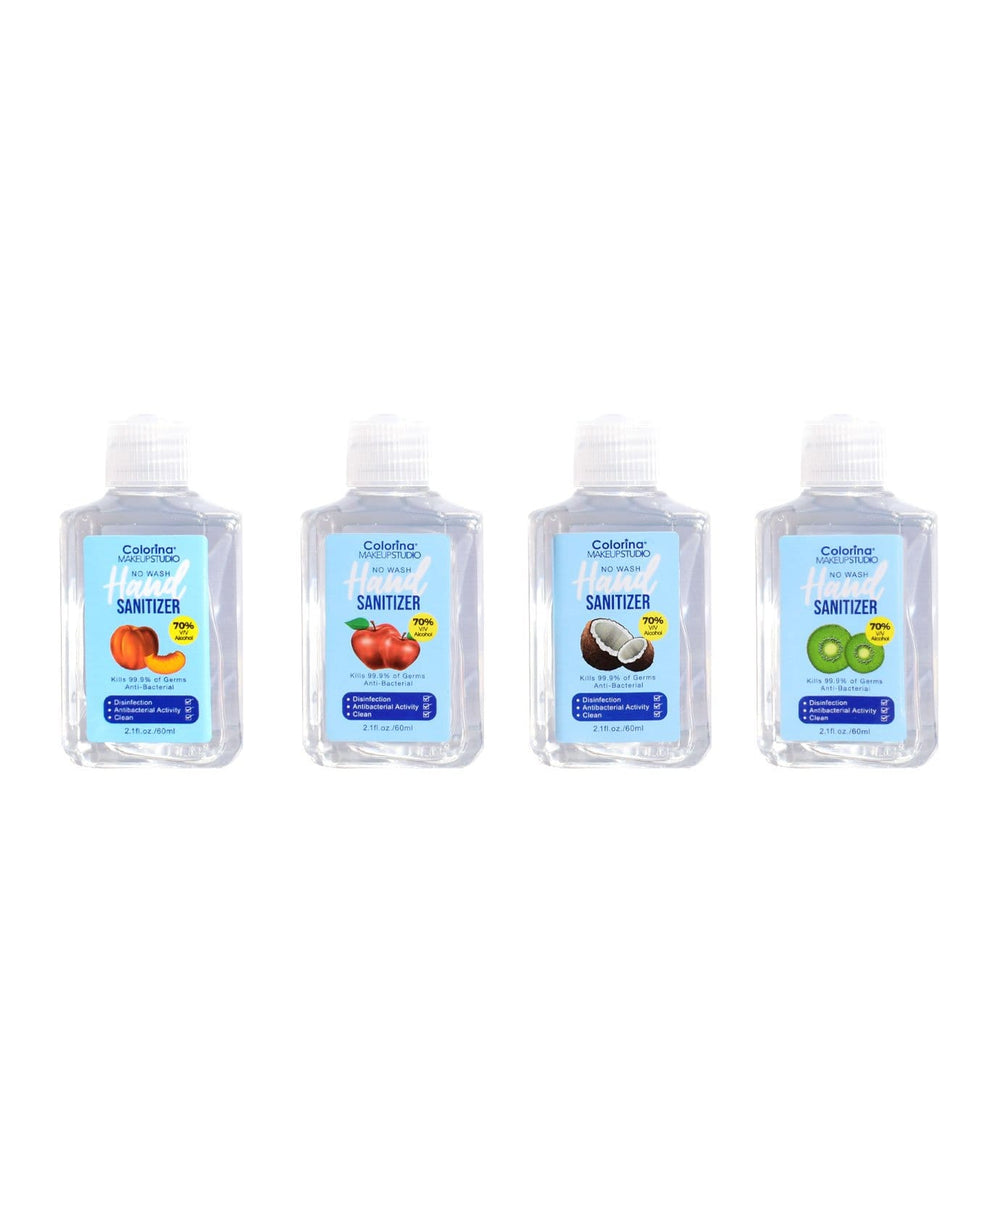 Colorina 2.1oz Hand Sanitizer